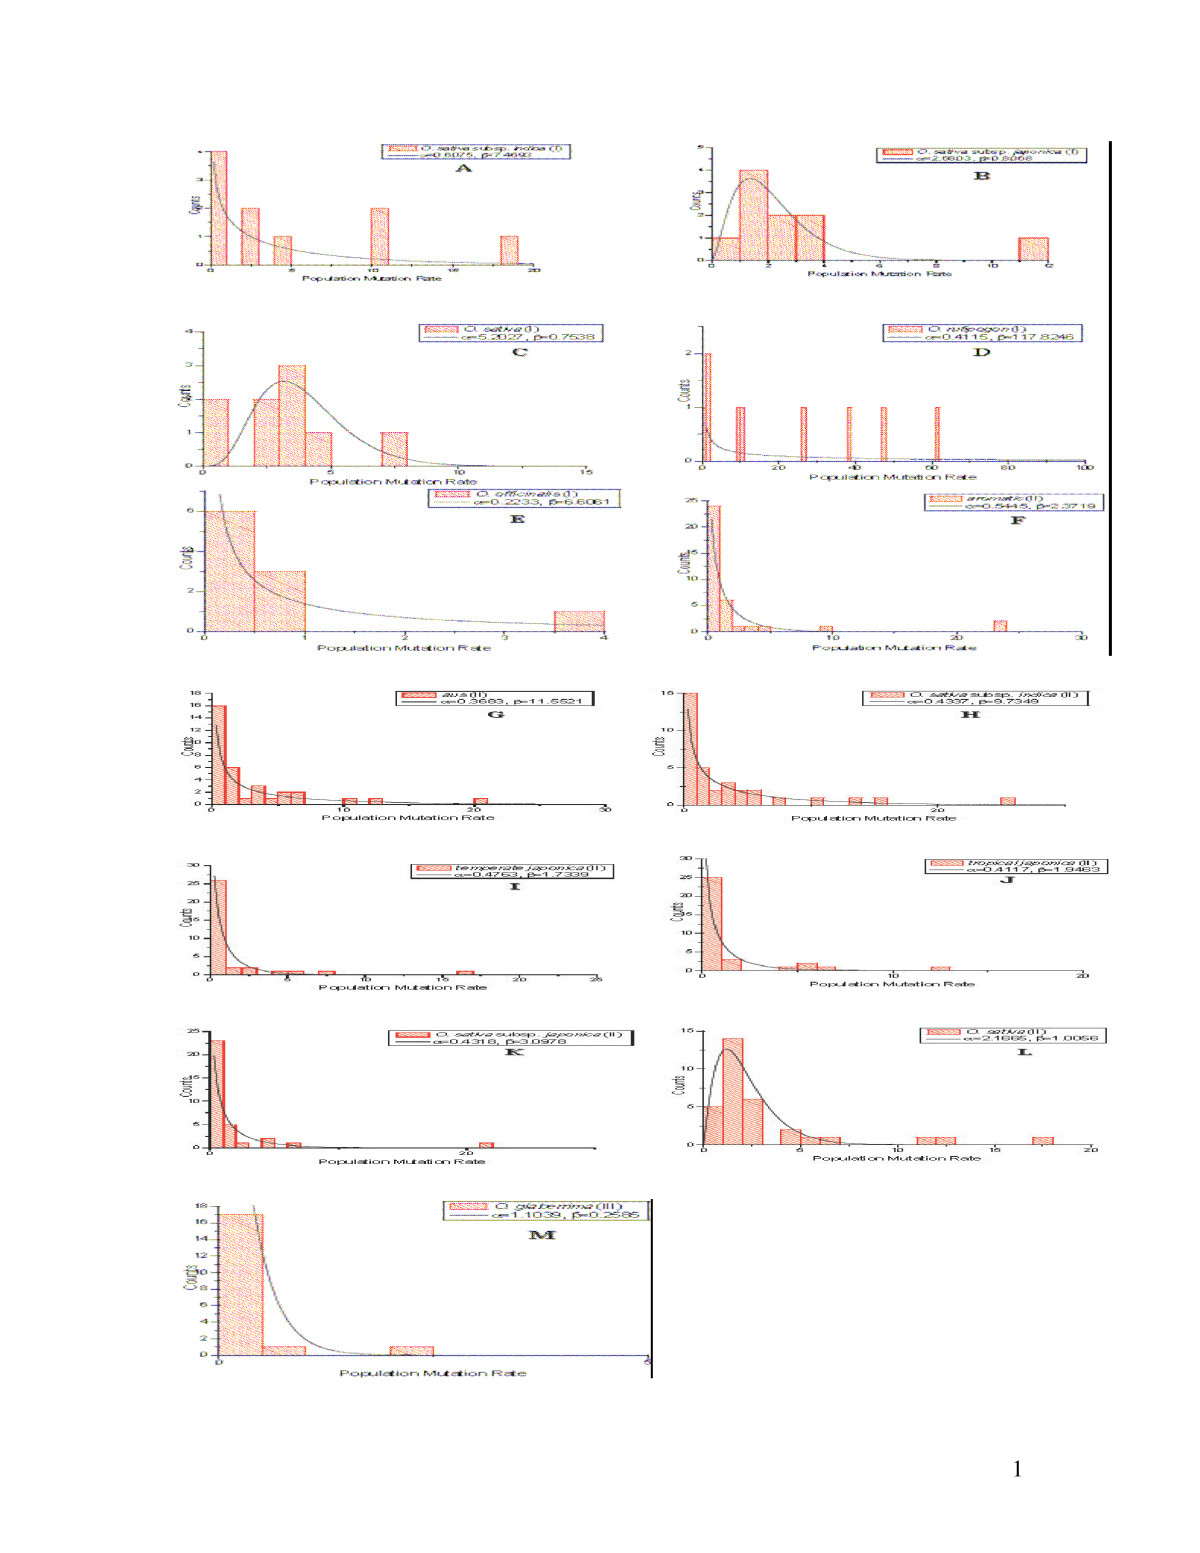 https://static-content.springer.com/image/art%3A10.1186%2F1471-2148-8-11/MediaObjects/12862_2006_Article_580_Fig3_HTML.jpg